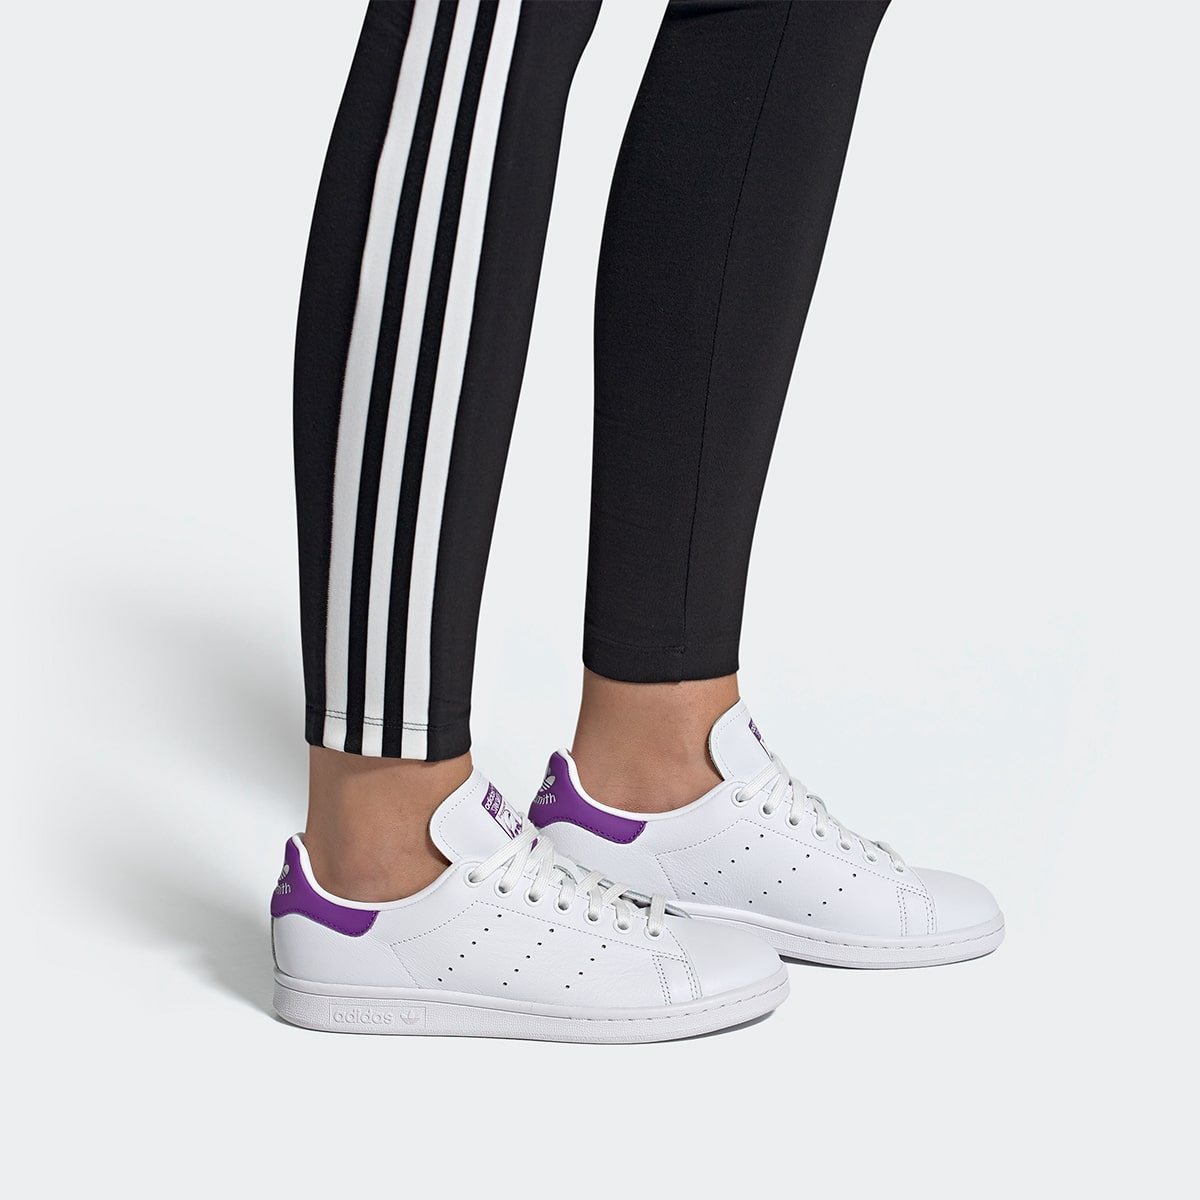 adidas Stan Smith in \